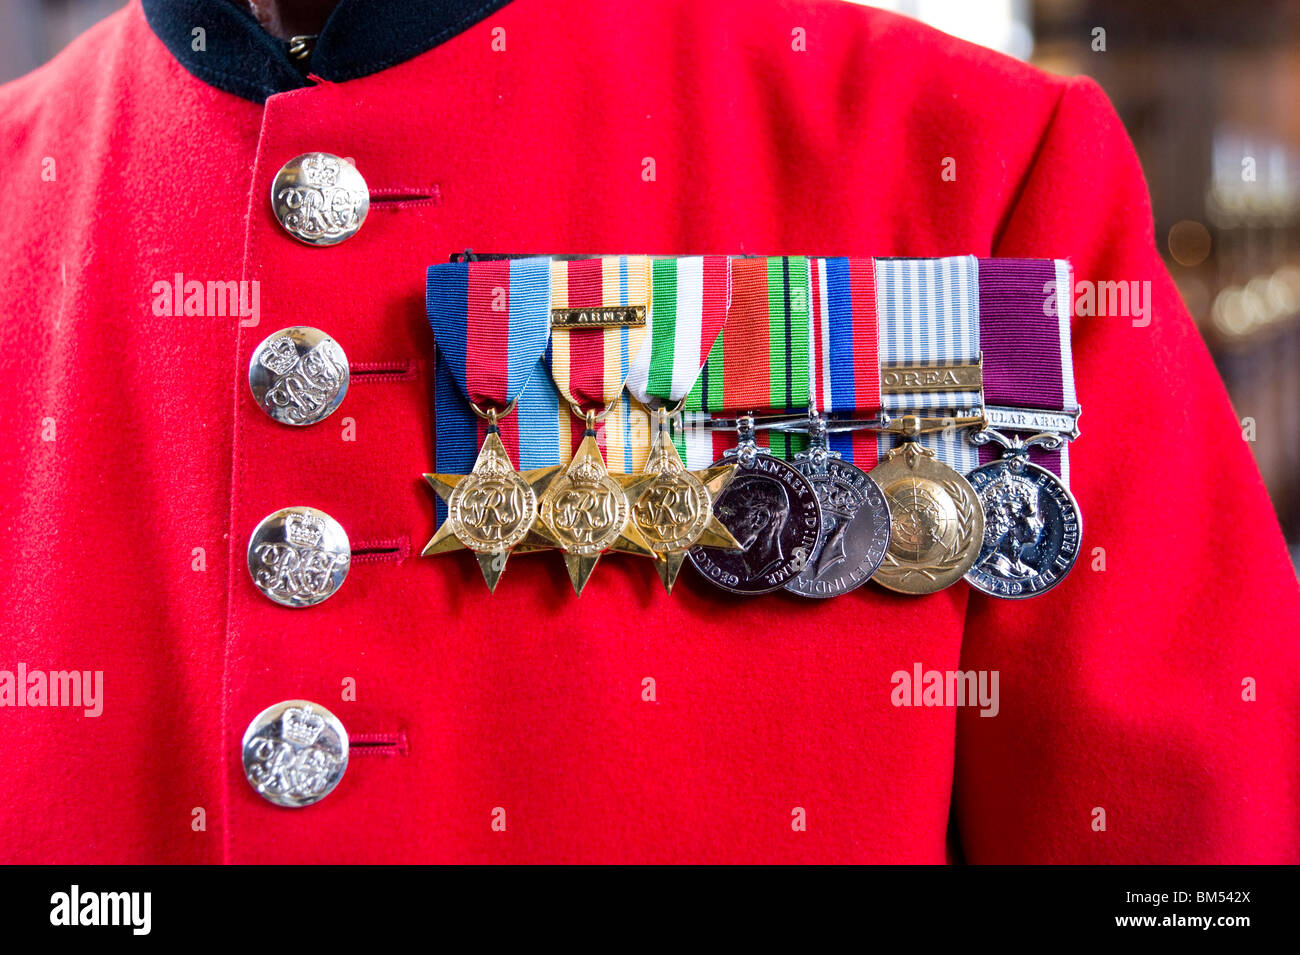 War medals on the scarlet coat of In-Pensioner John Ley at the Royal Hospital Chelsea in London, England UK - Stock Image